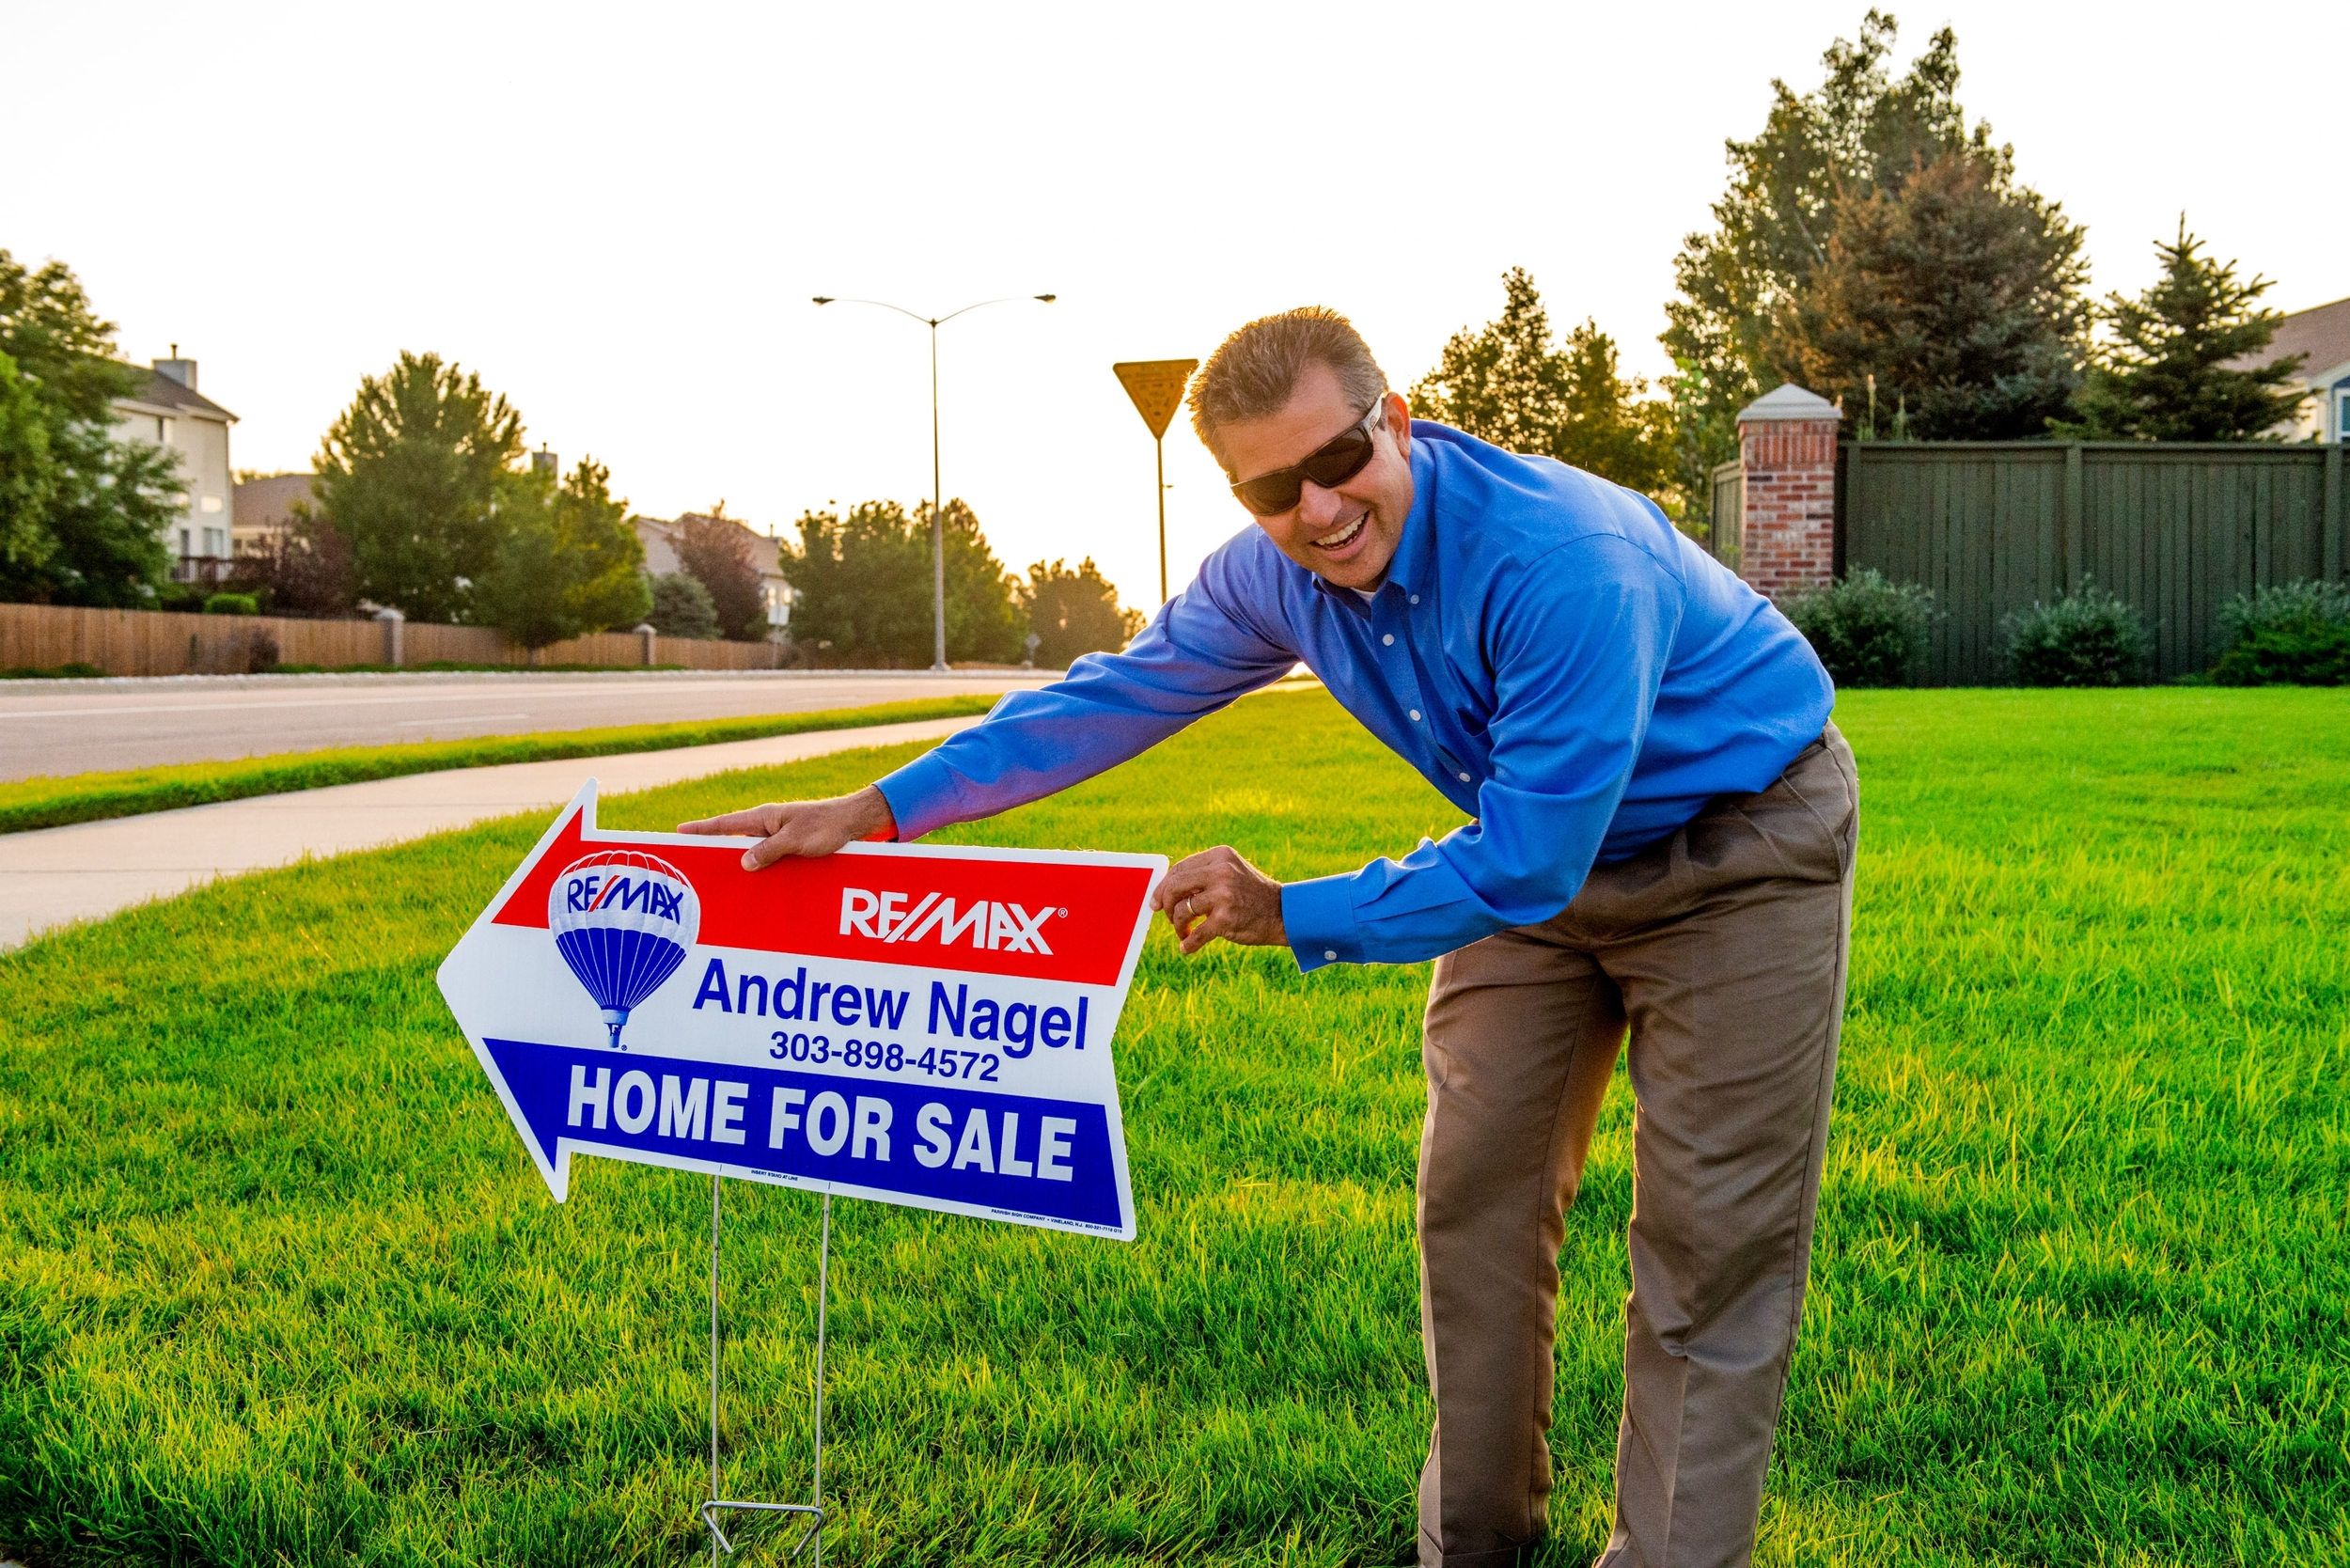 Andrew Nagel, Solterra listing agent and RE/MAX realtor